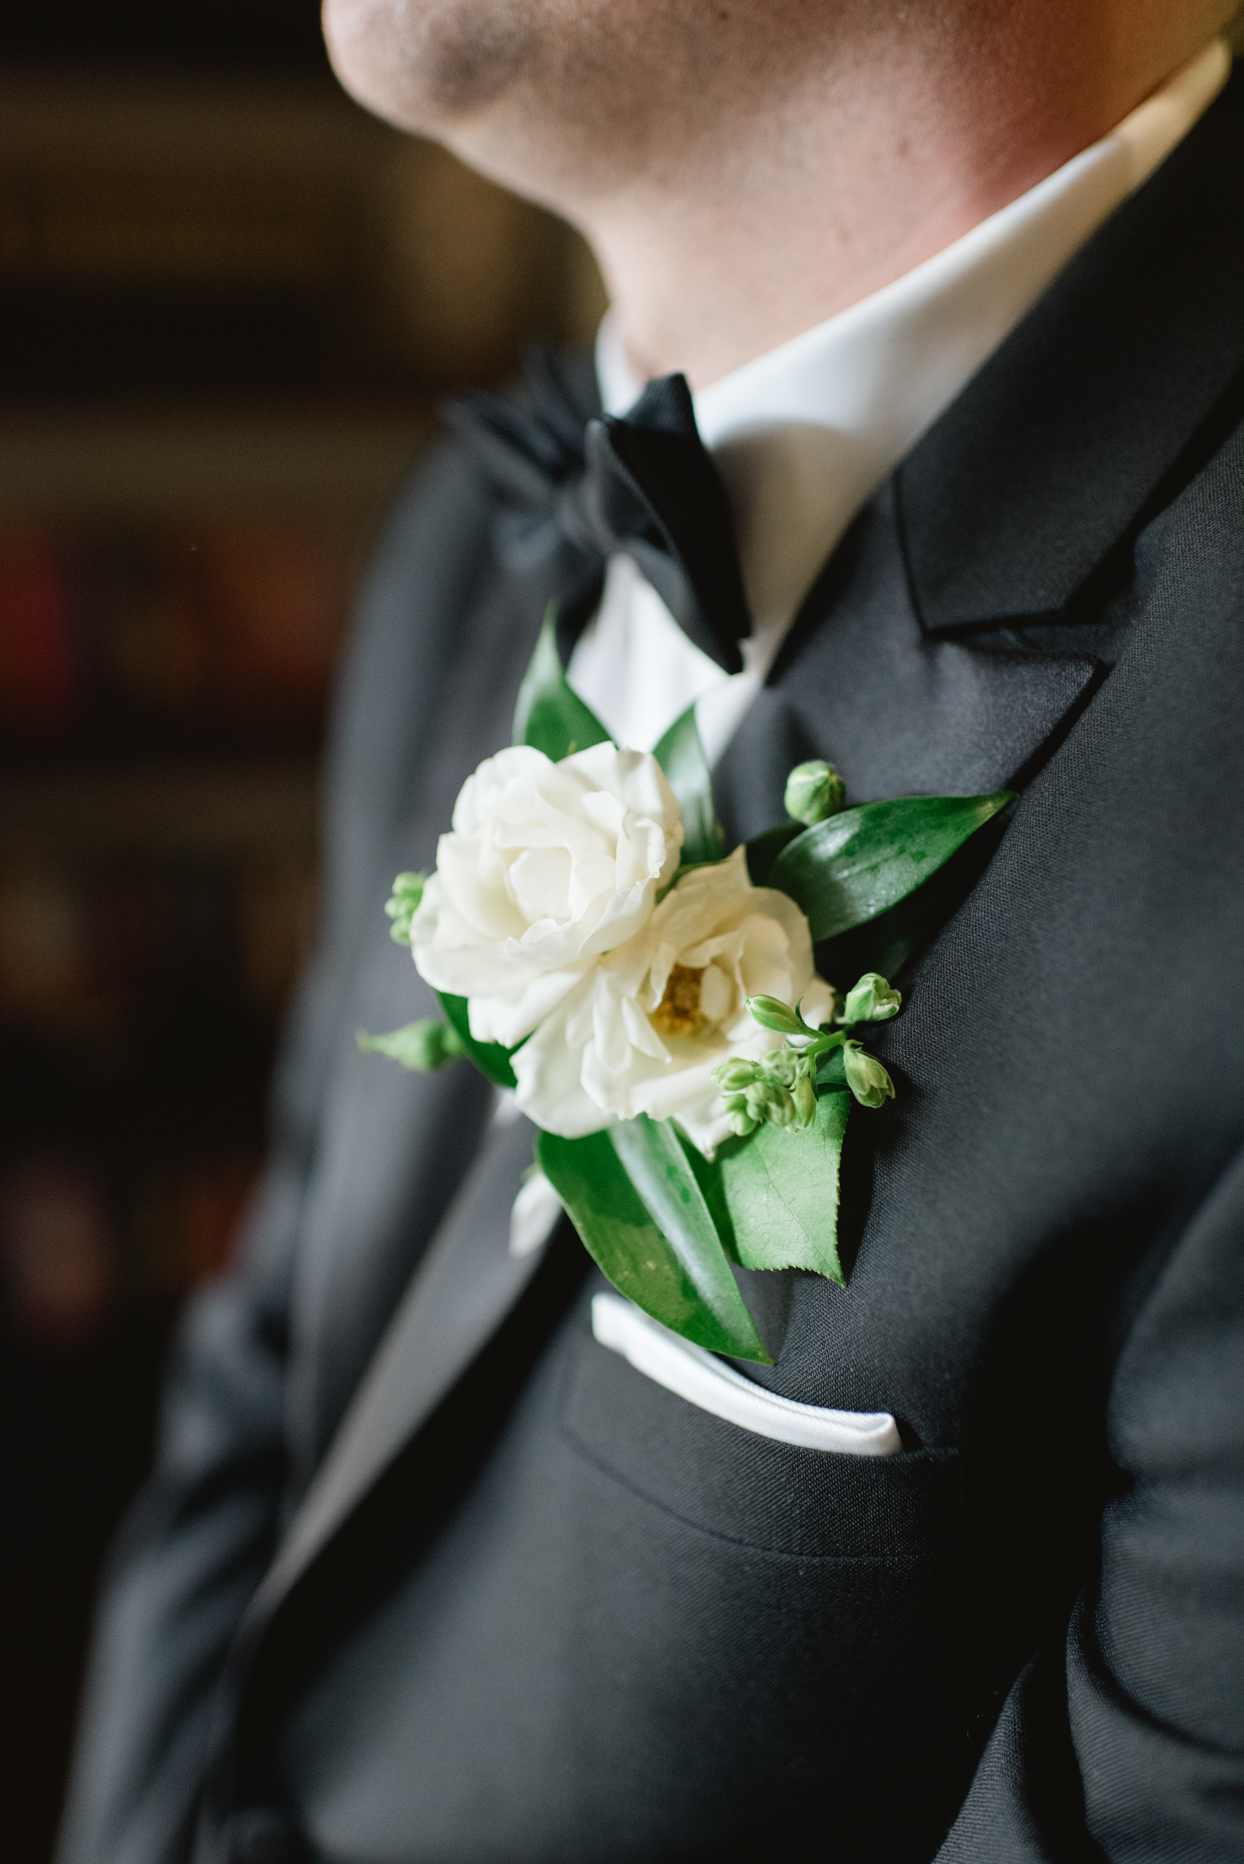 white boutonniere on groom's black suit